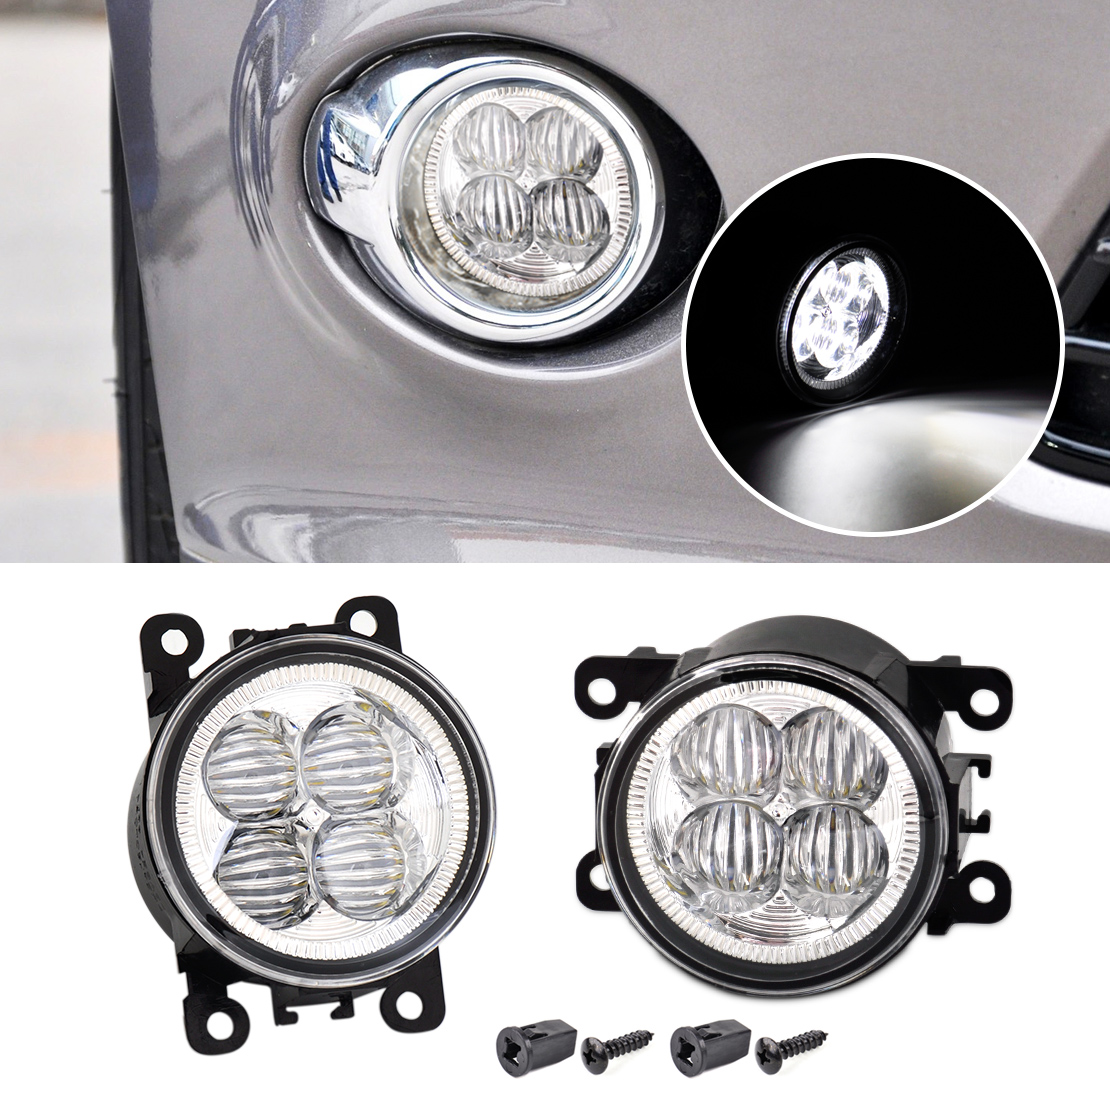 beler 2pcs Highlighted LED White Fog Light Lamp Replacement 3225-2050B AC2592111 for Ford Focus Acura Honda Subaru Nissan Suzuki dwcx fog light lamp female adapter wiring harness sockets wire connector for ford focus acura nissan honda cr v infiniti subaru